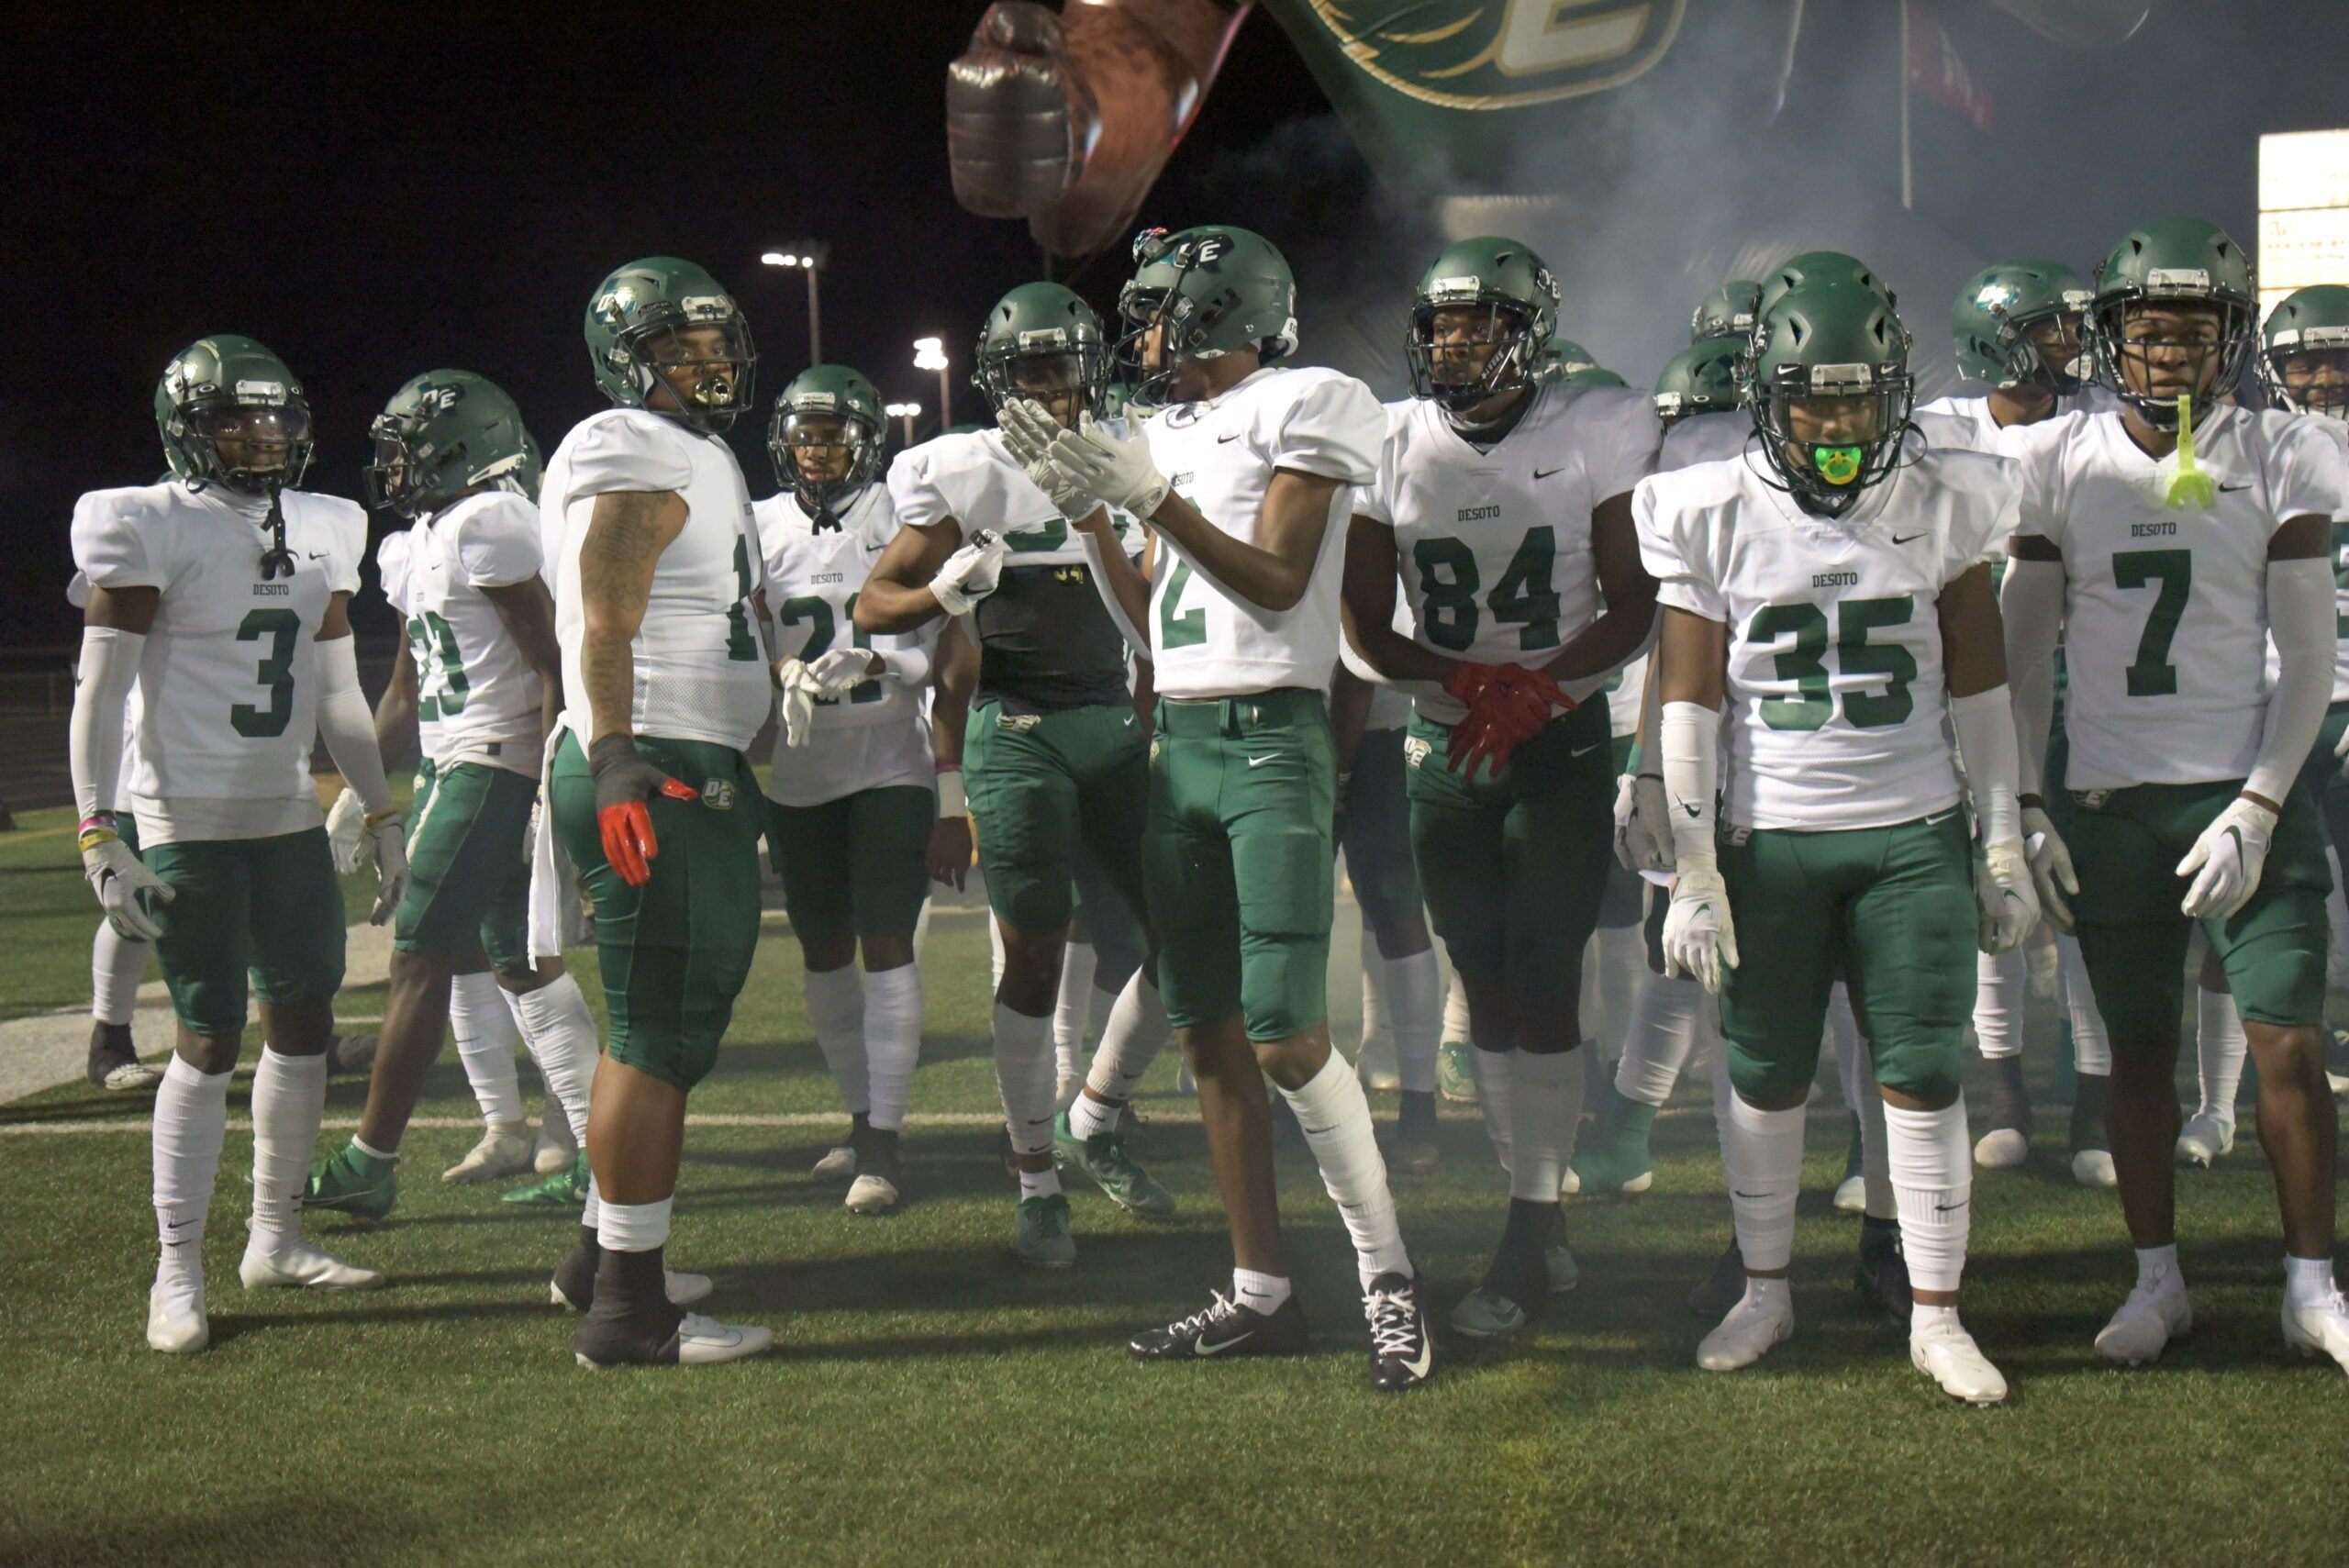 DeSoto football players